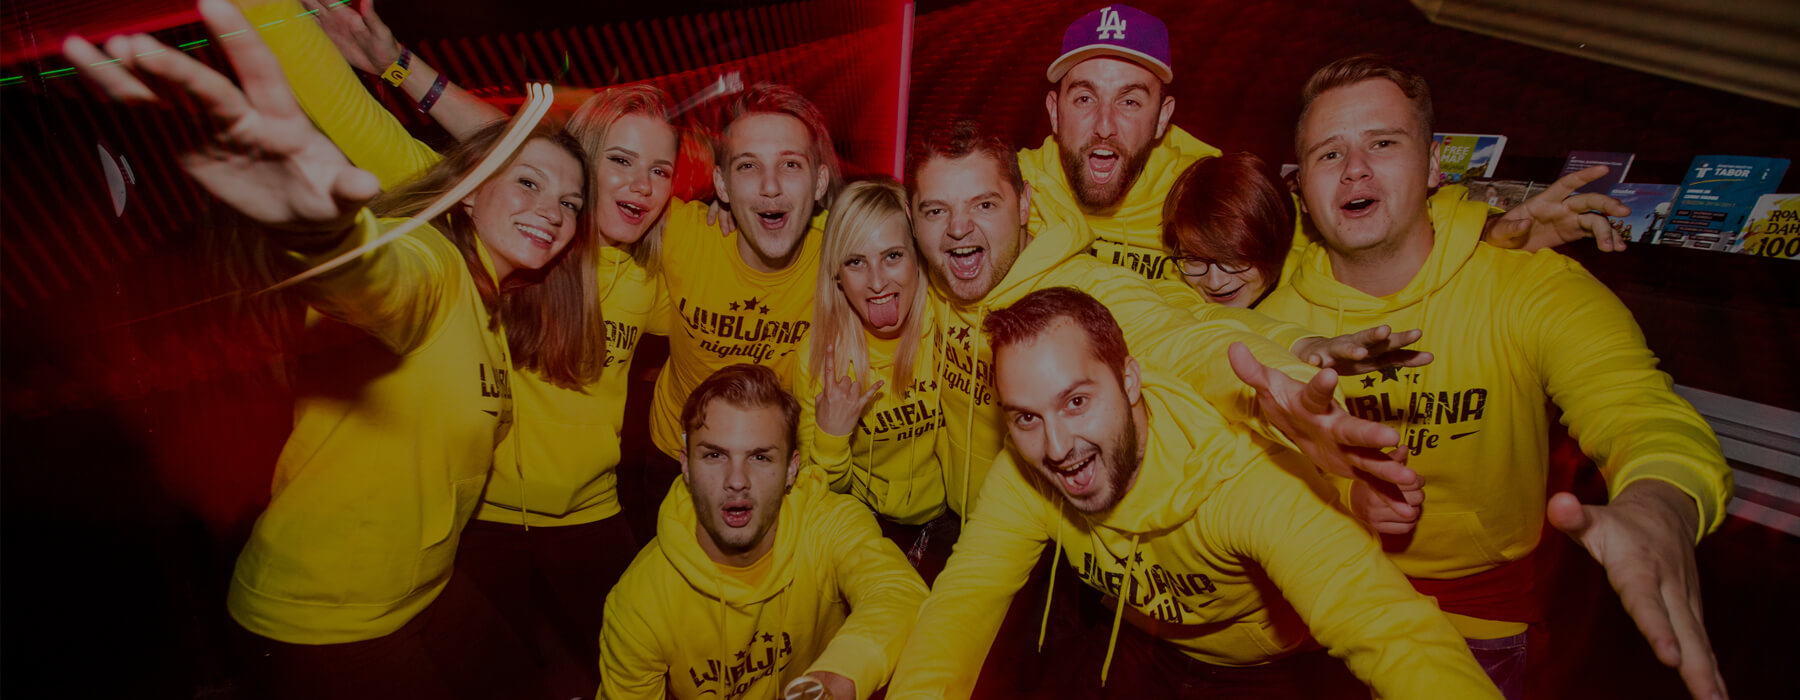 Ljubljana nightlife team is always ready for another party